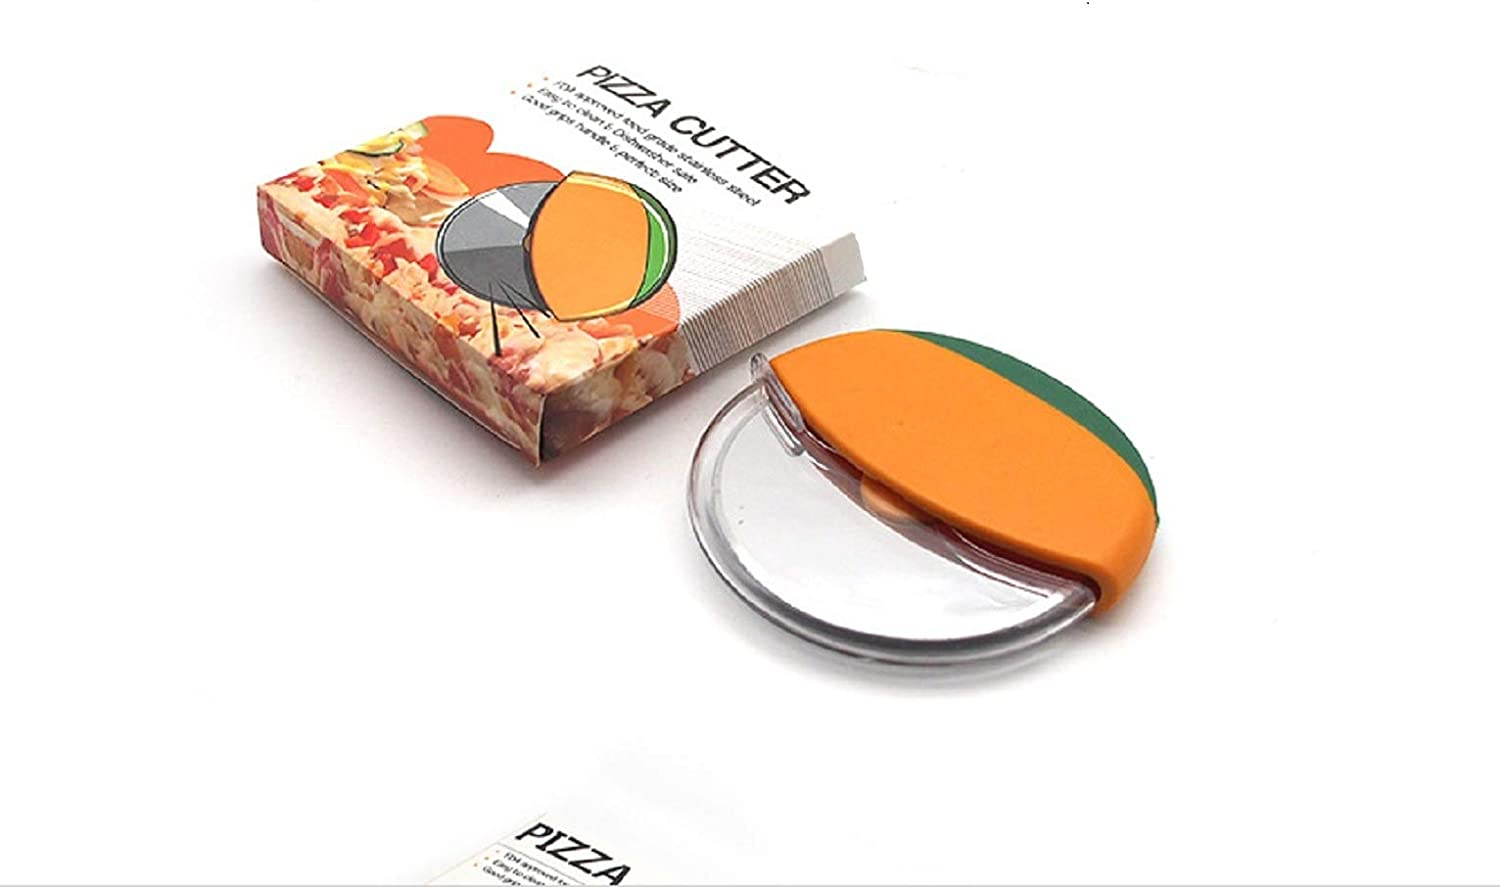 MILLER KITCHEN's, Stainless Steel Pizza Cutter Wheel with Protective Blade Guard, Easy To Clean (YELLOW)